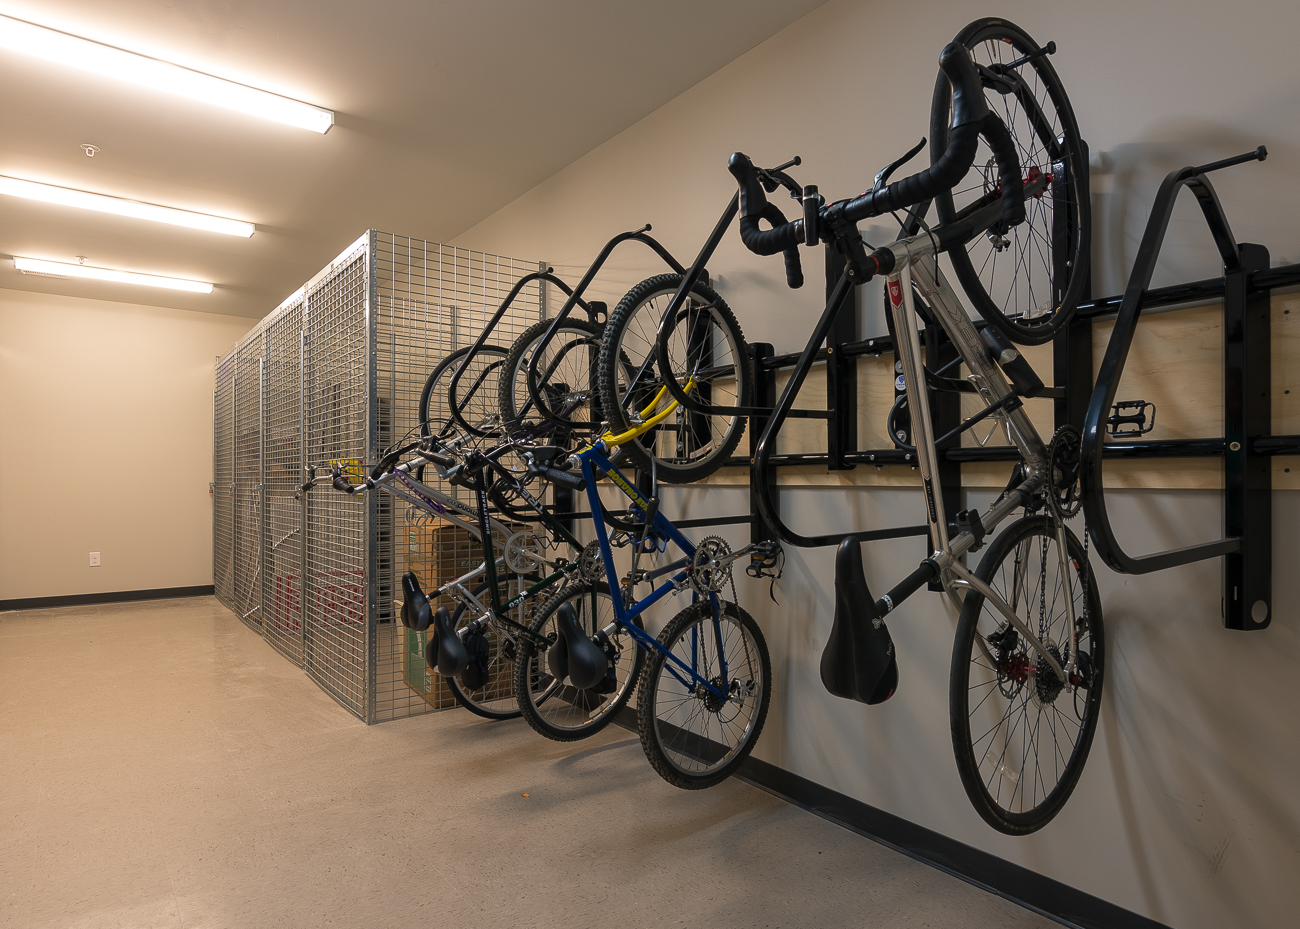 A storage room with wall-mounted bike racks / Image: Phil Armstrong, Cincinnati Refined // Published: 8.10.18